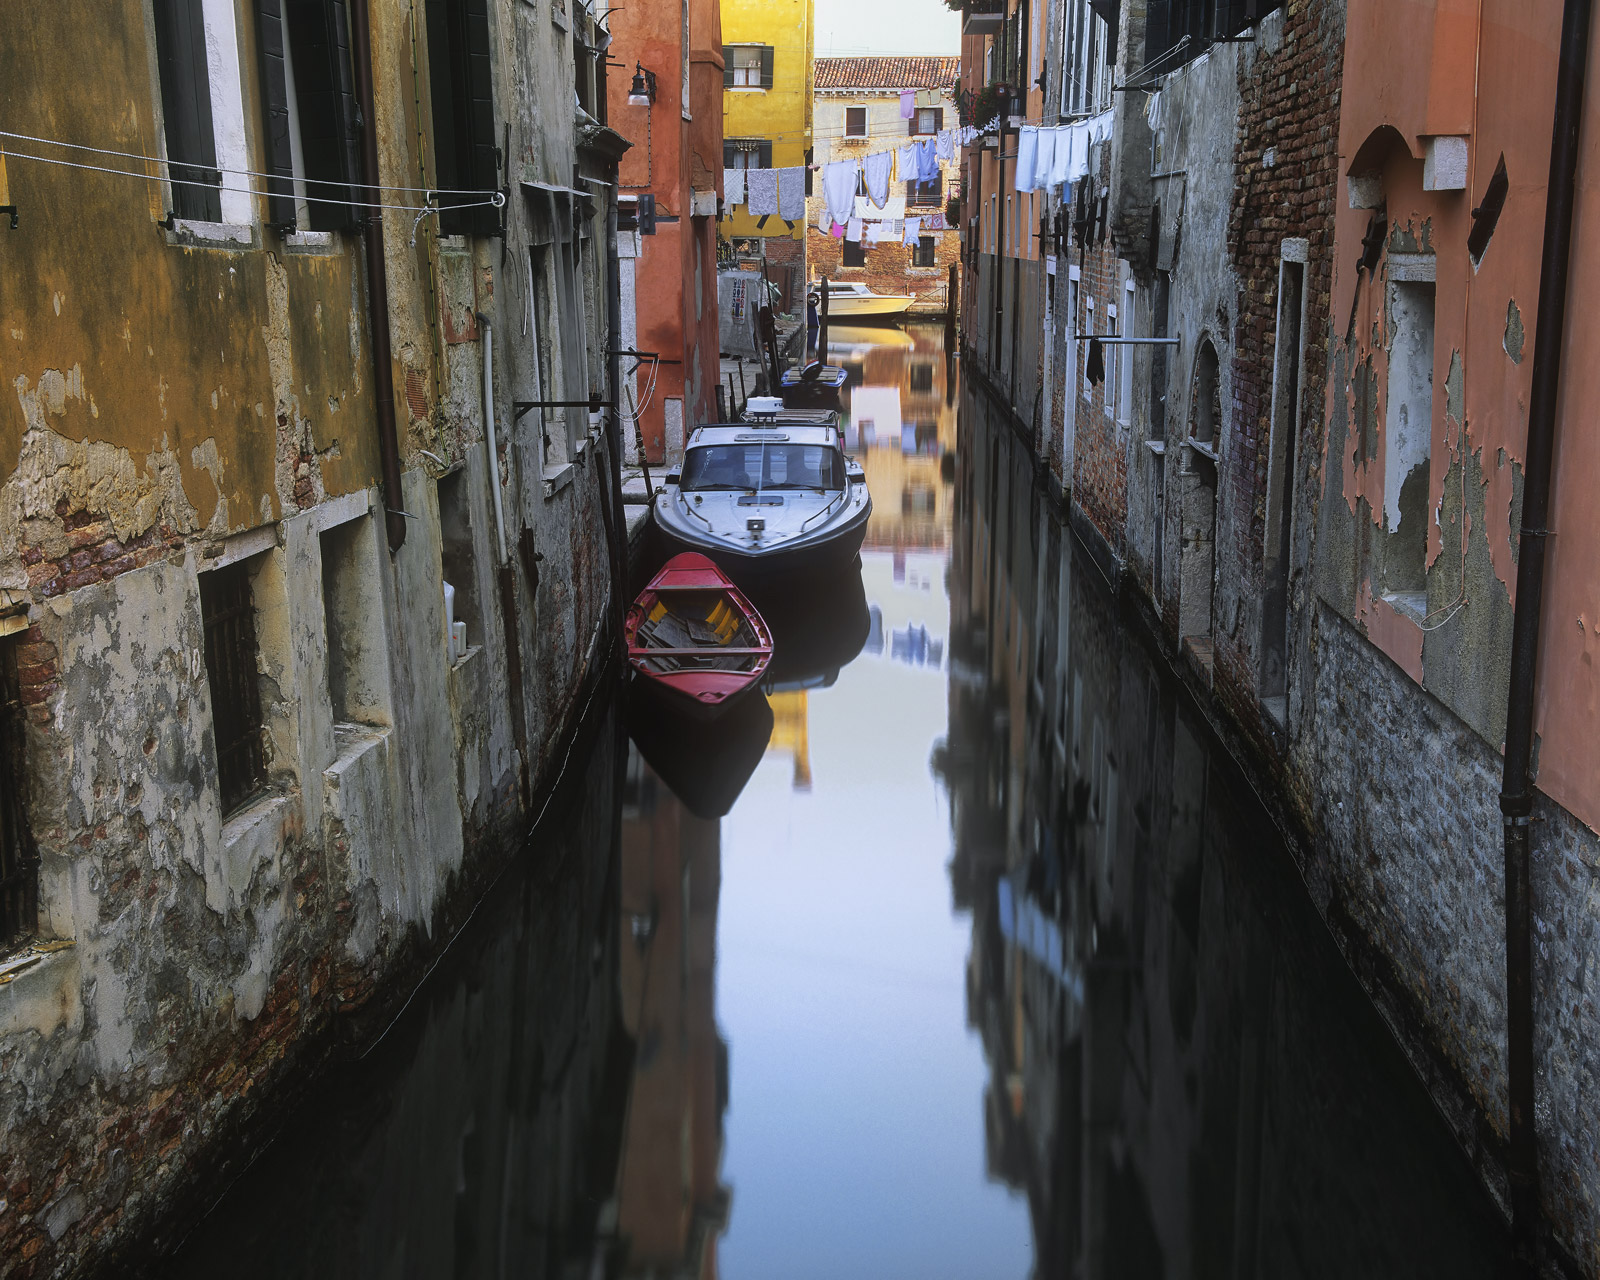 Venice has a bit of a reputation for being smelly and overcrowded during high summer but in October that stagnant smell disappears...